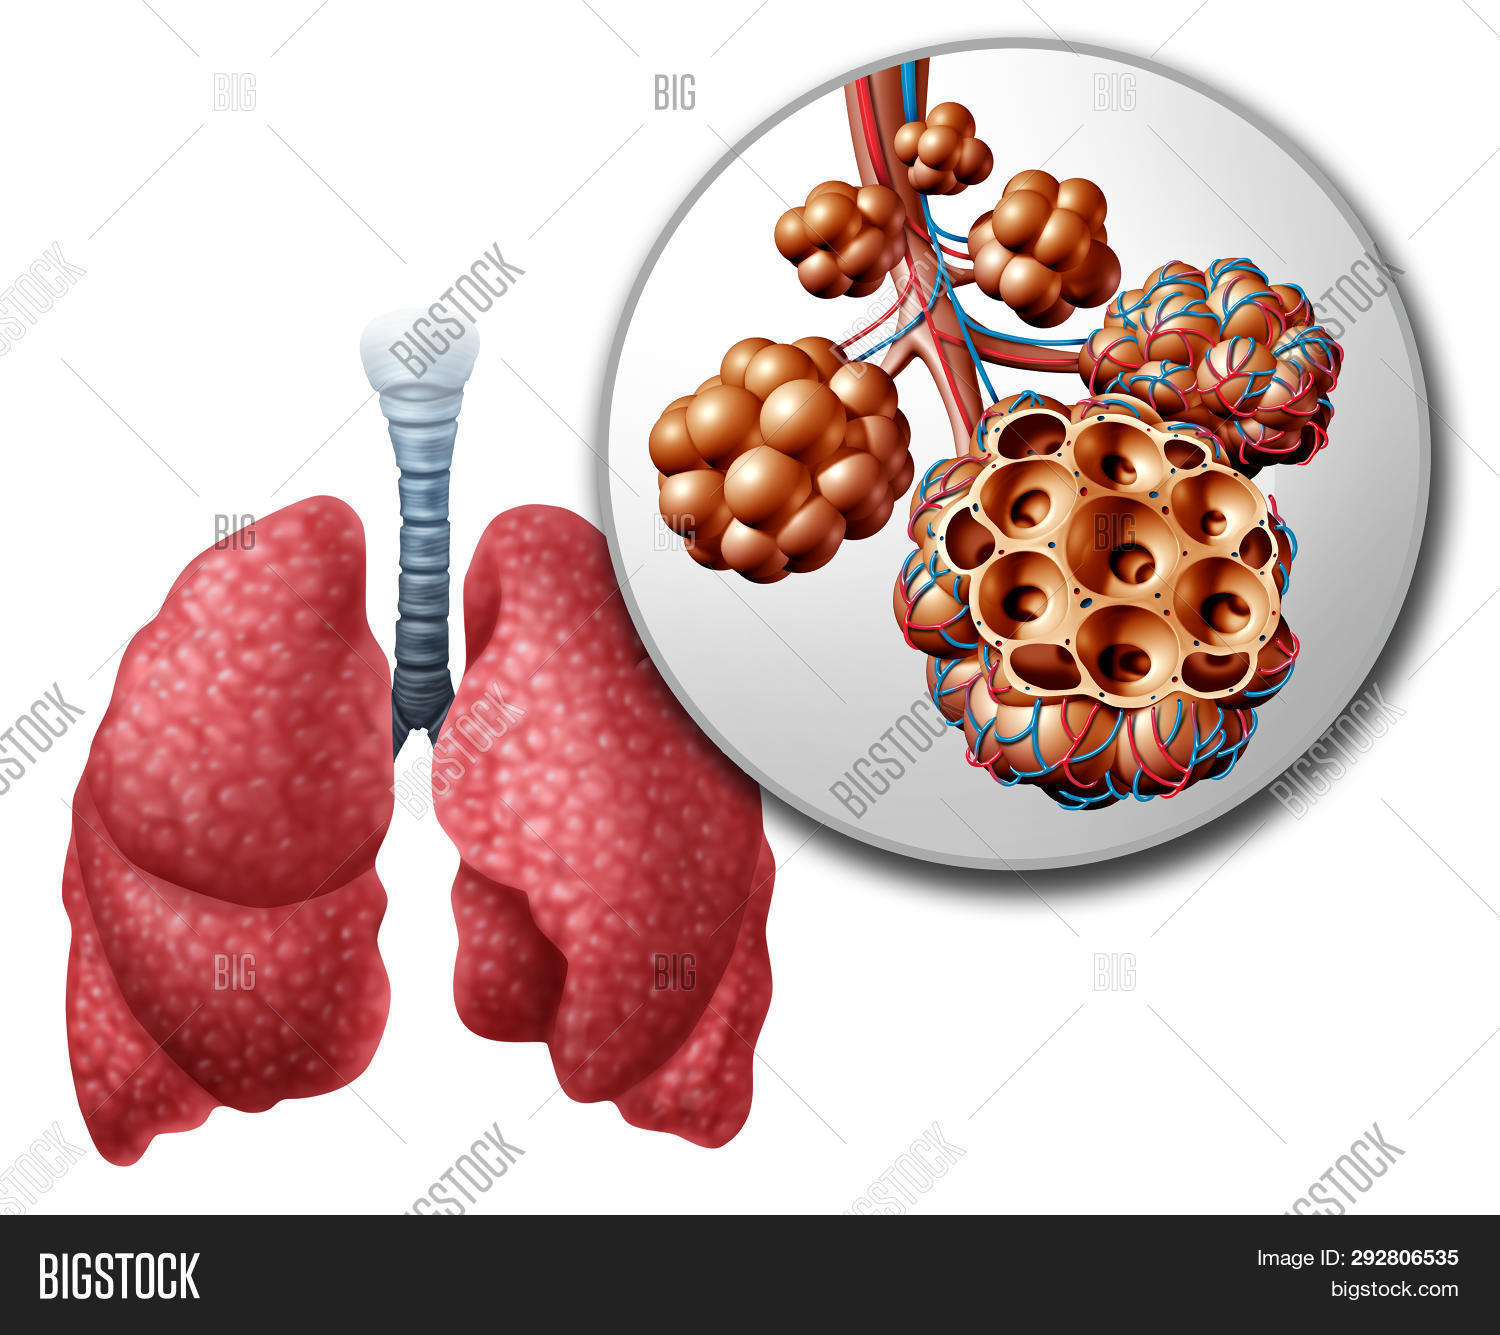 hight resolution of lung pulmonary alveoli or alveolus anatomy diagram as a medical concept of a close up of